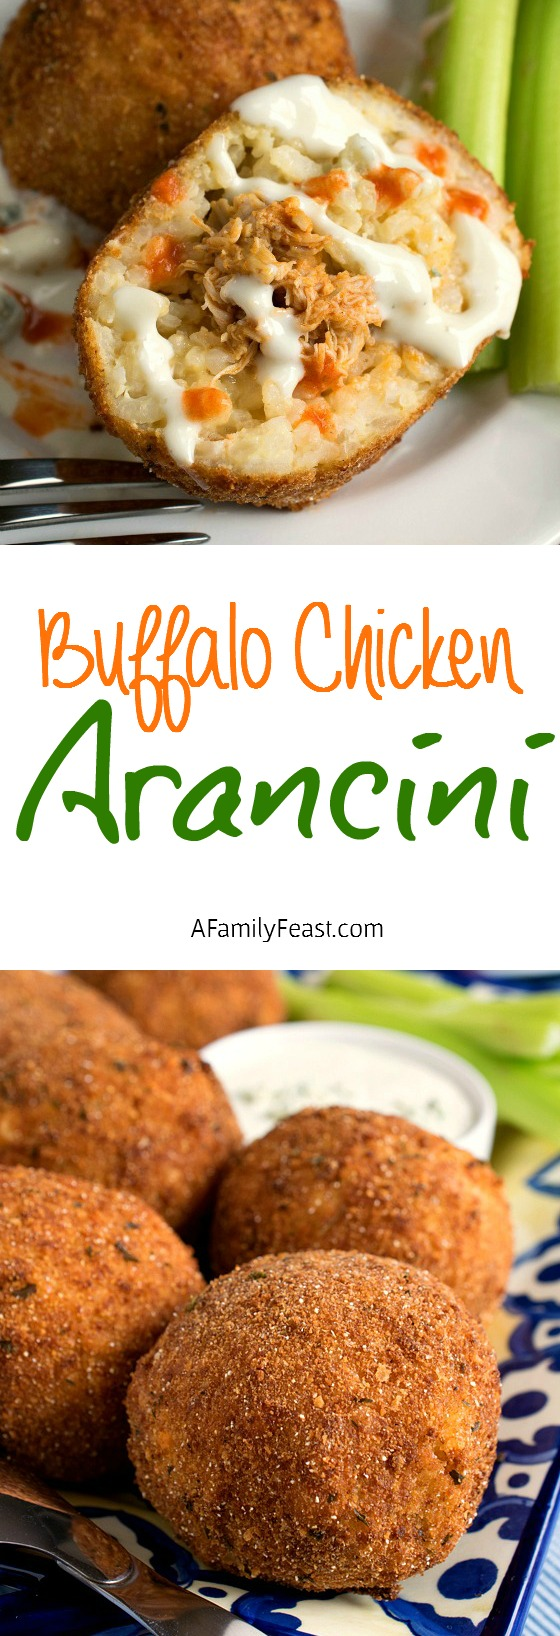 Buffalo Chicken Arancini - A delicious twist on an Italian classic. Fried rice balls stuffed with Buffalo chicken, served with Bleu cheese dipping sauce.